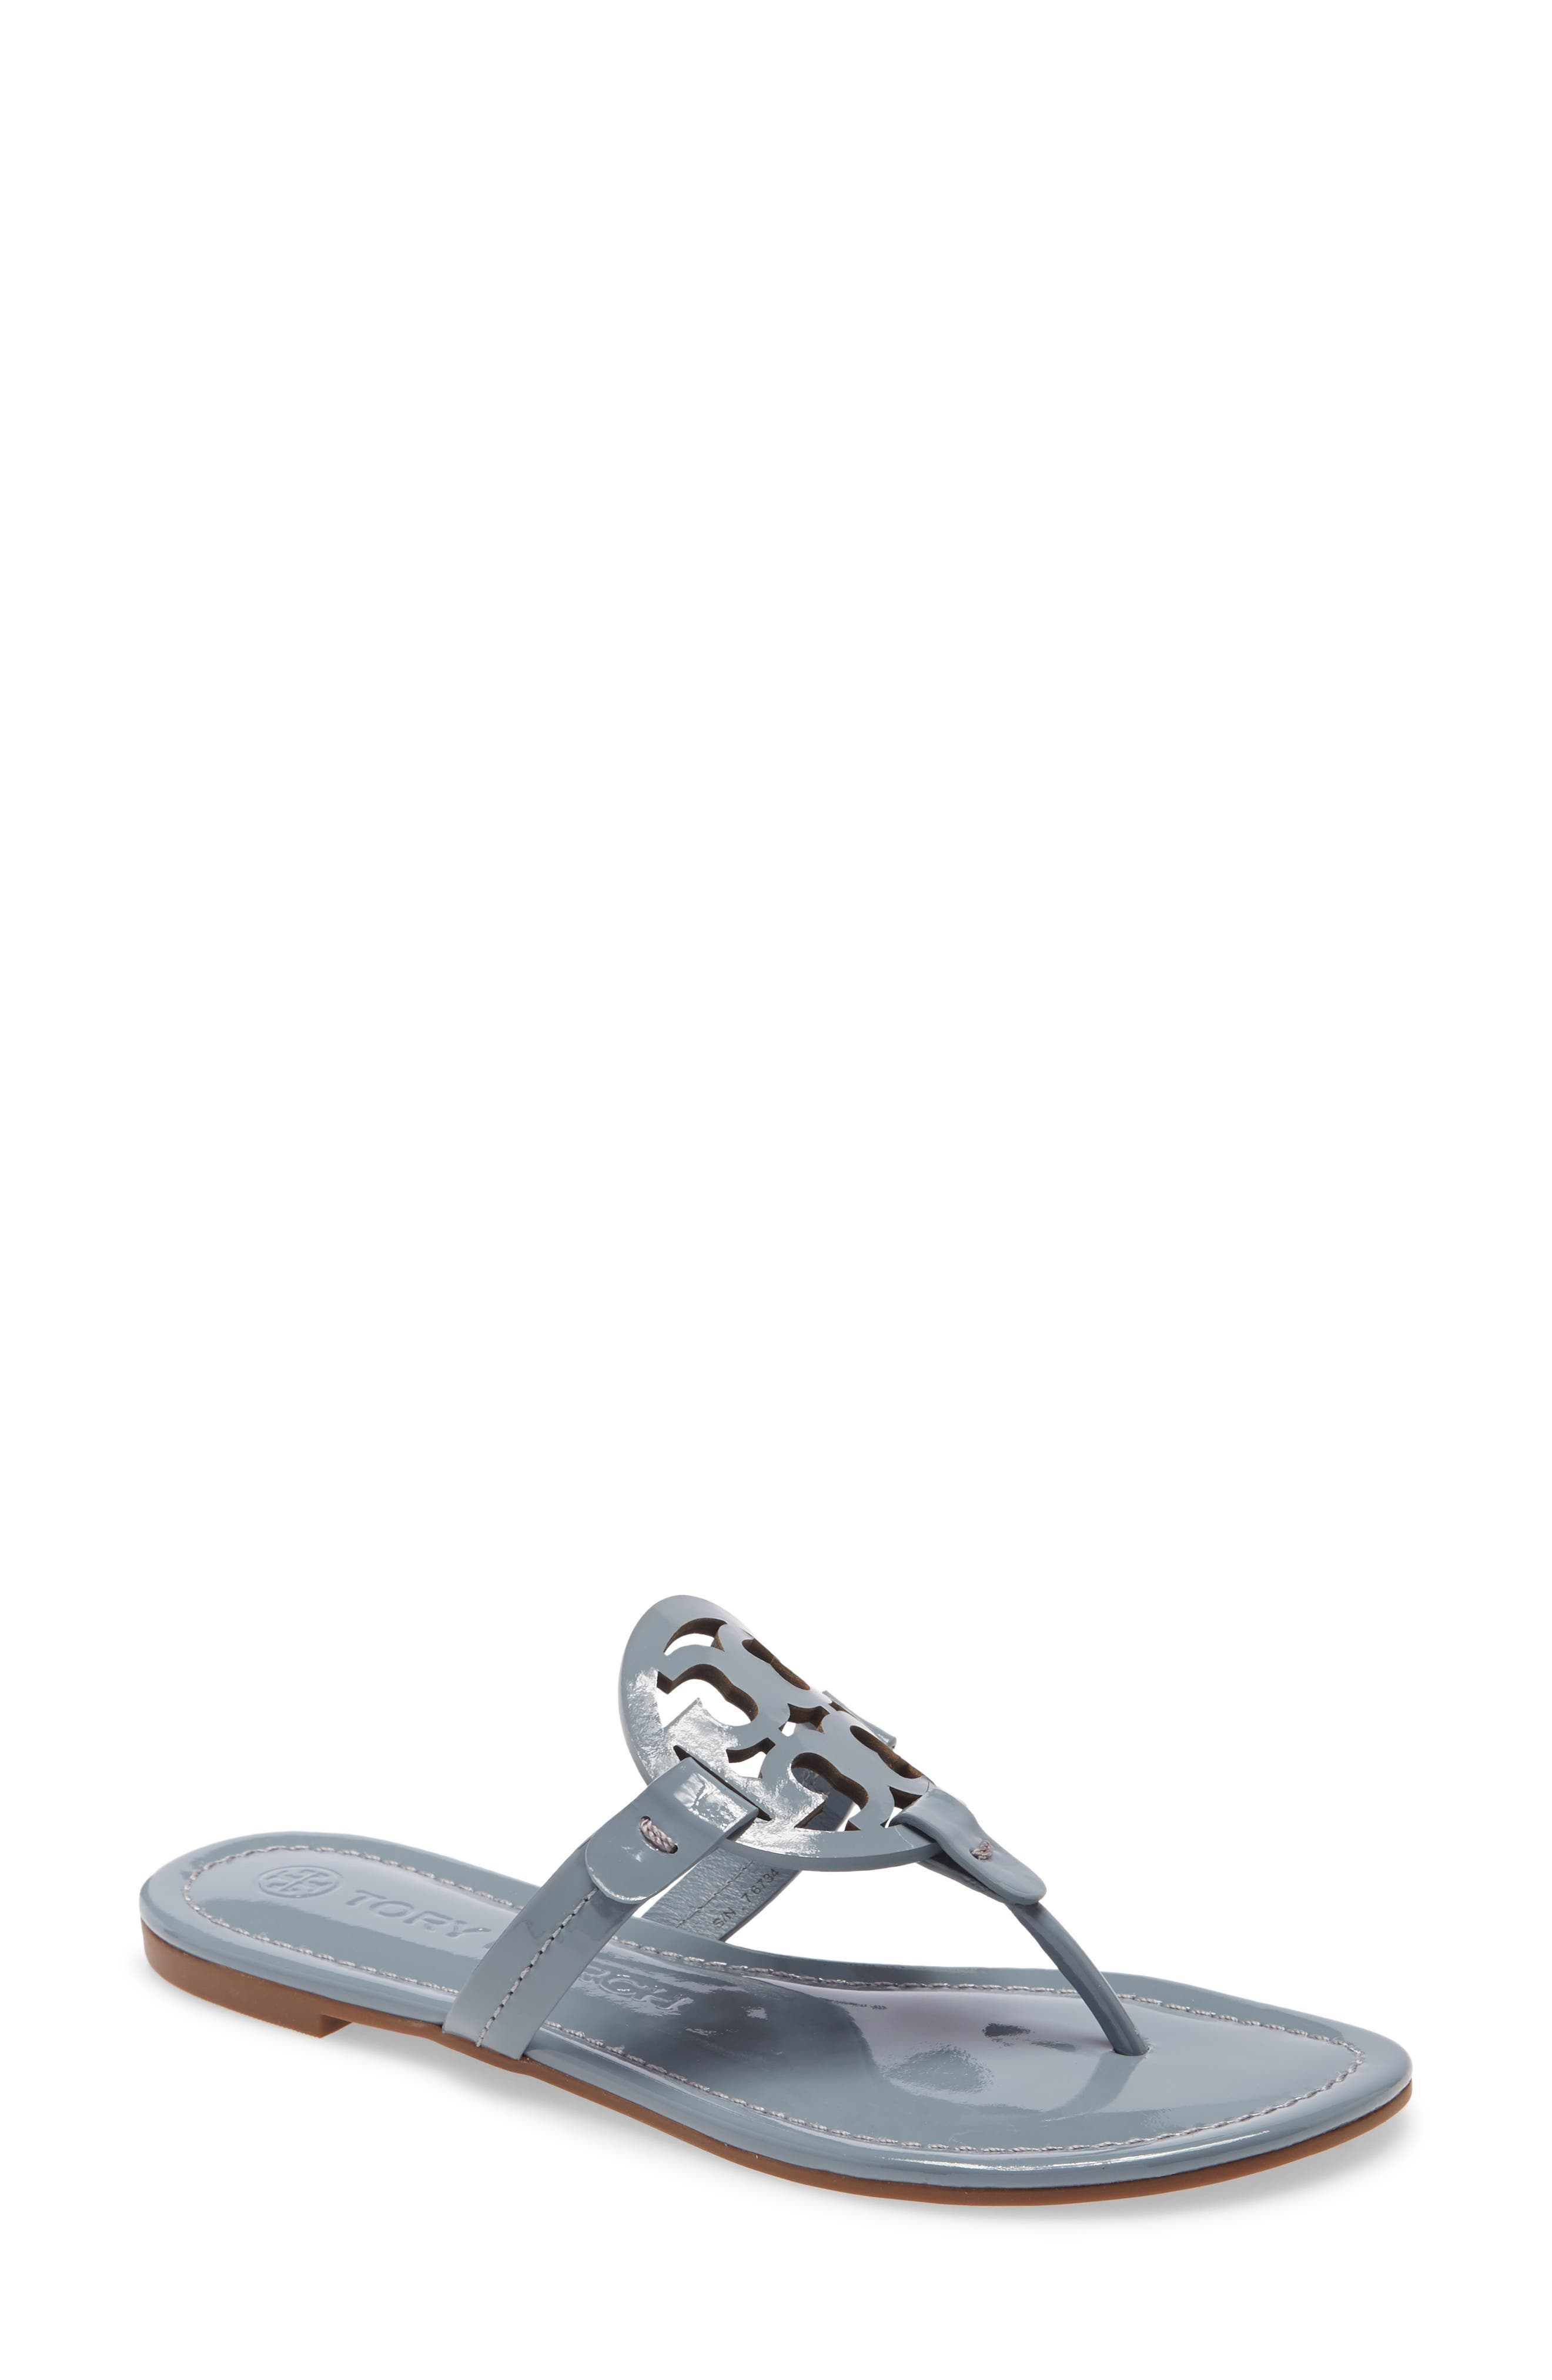 Women's Tory Burch Shoes | Nordstrom